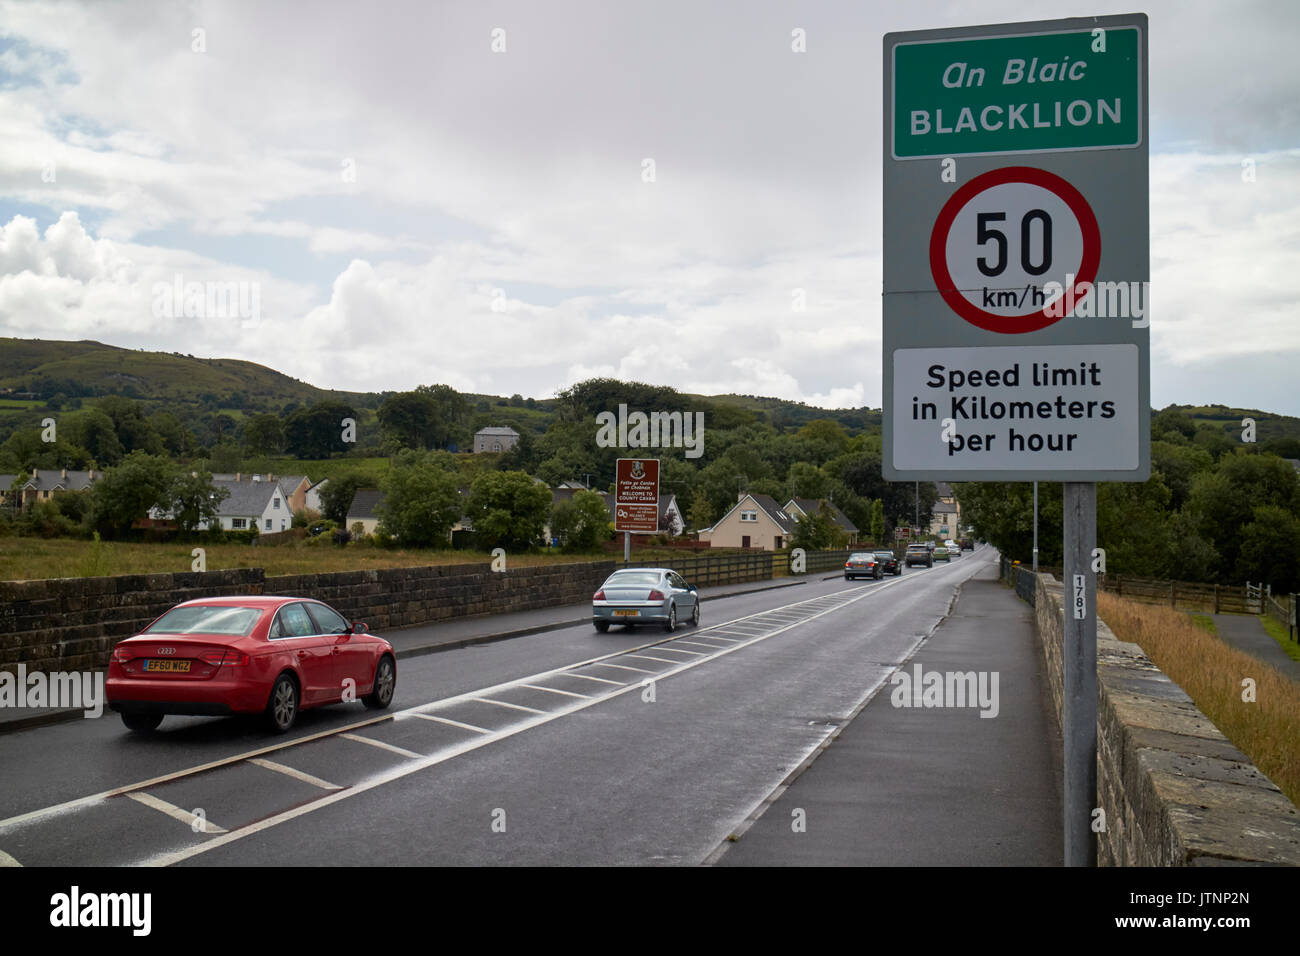 speed limit metric sign on land border between northern ireland and the republic of ireland in belcoo - blacklion looking into the republic of ireland - Stock Image